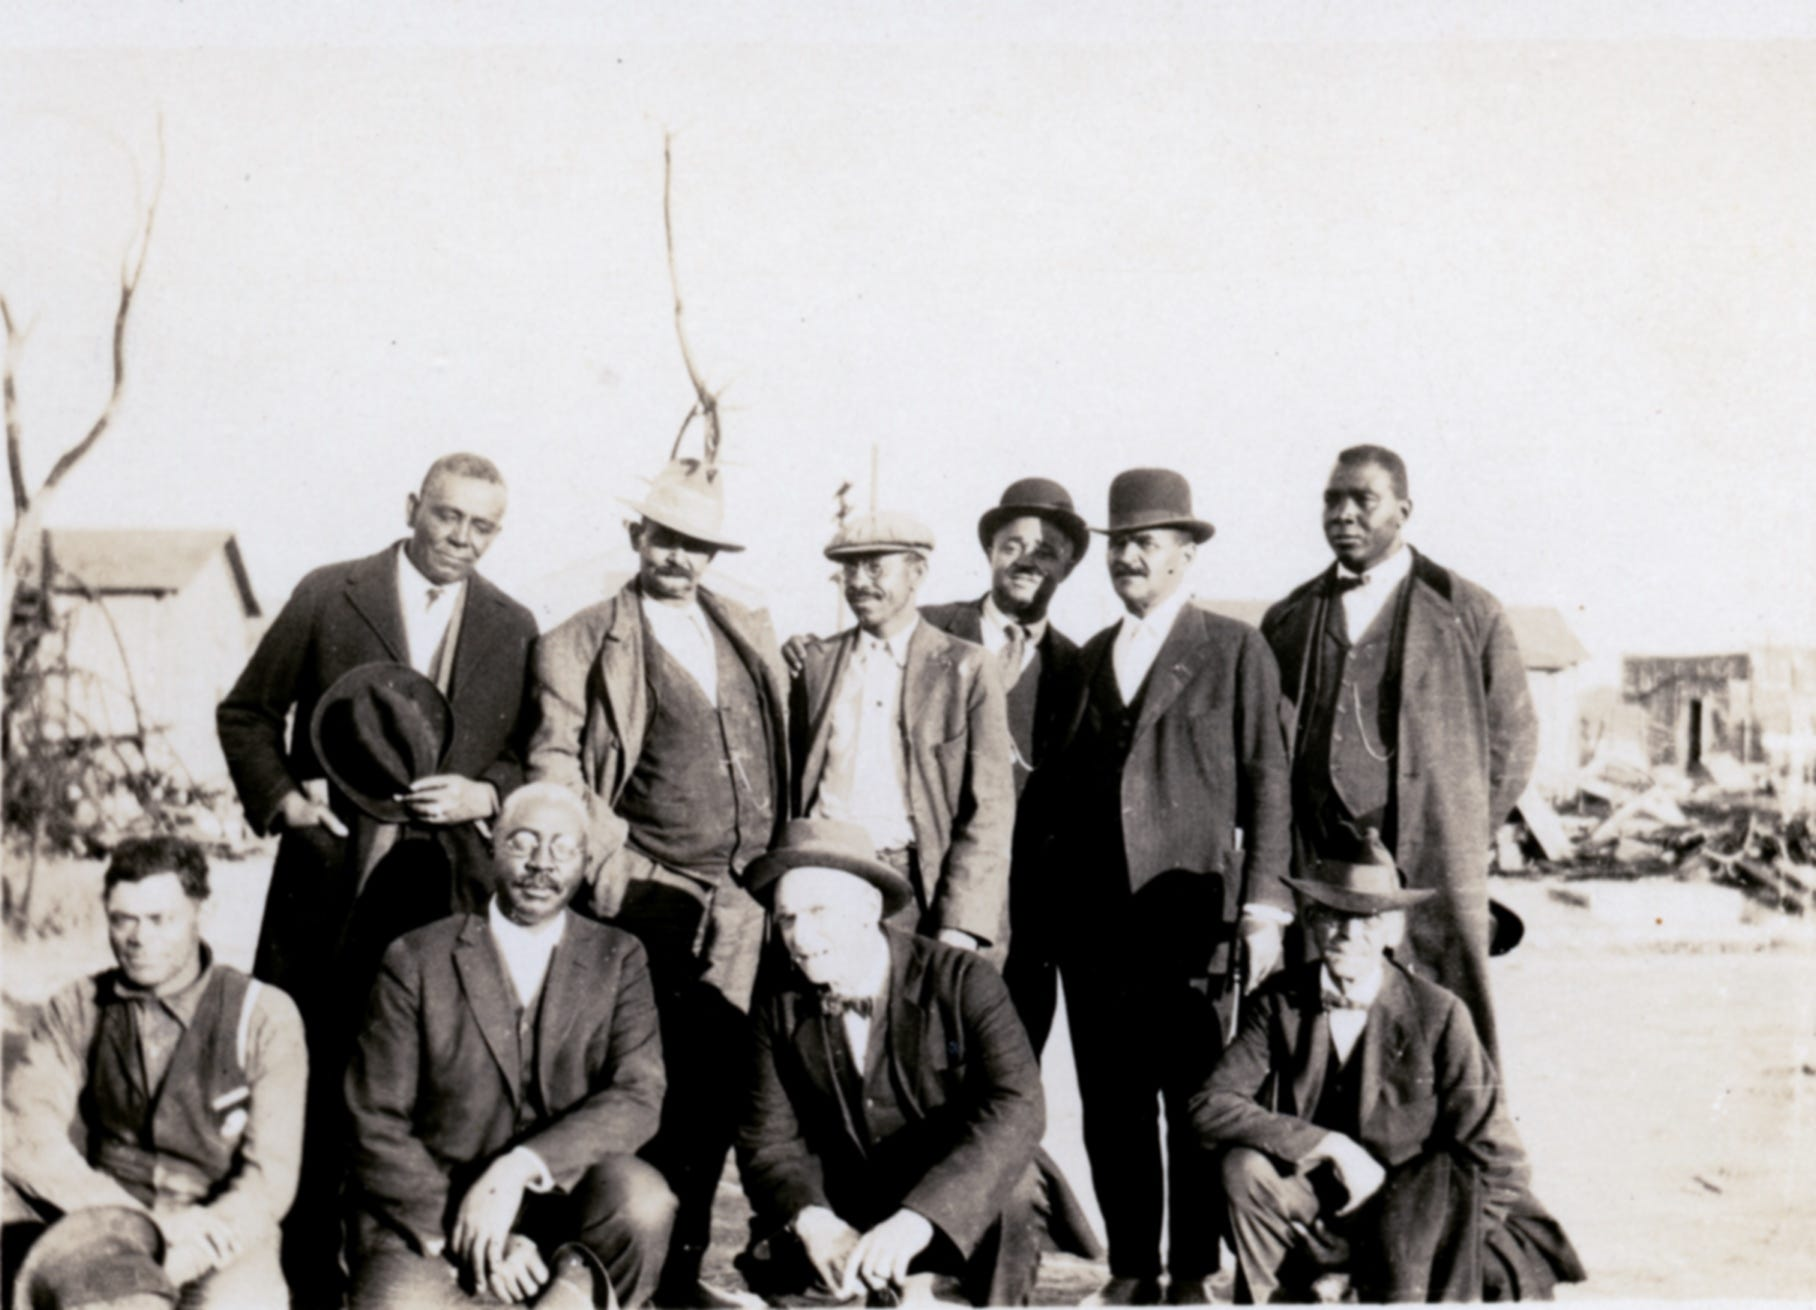 """The members of the Colored Citizens Relief Committee and East End Welfare Board following the 1921 Tulsa Race Massacre.  The individuals standing include (left to right) Williams, Phillips, Esta """"Essie"""" A. Loupe, Reverend E.N. Bryant, Horace T. Hughes and McLean. The men kneeling include (left to right) Perry Russell, O.W. Gurley, Bush, and Tucker Gilmer."""